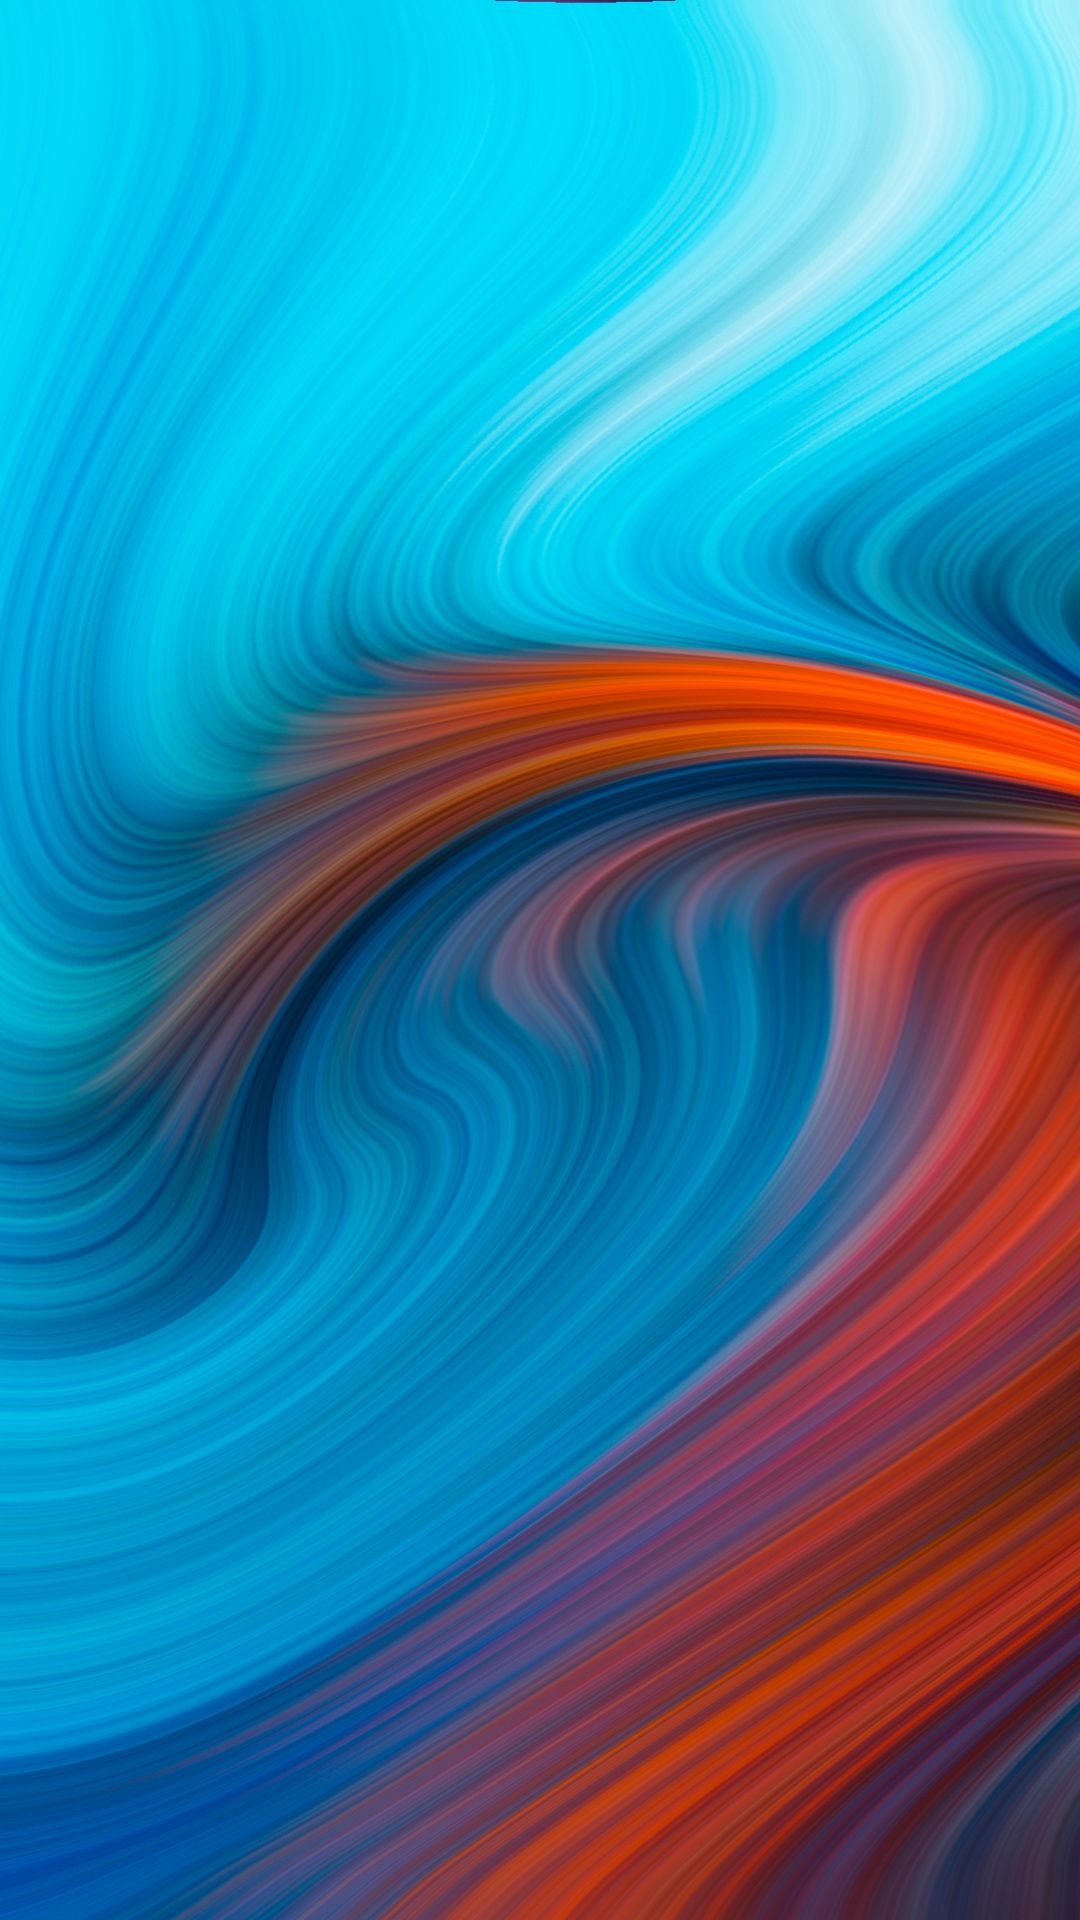 1080x1920 Blue Orange Swirl Pattern Abstraction Wallpaper Blue Design Graphic Oneplus Wallpapers Abstract